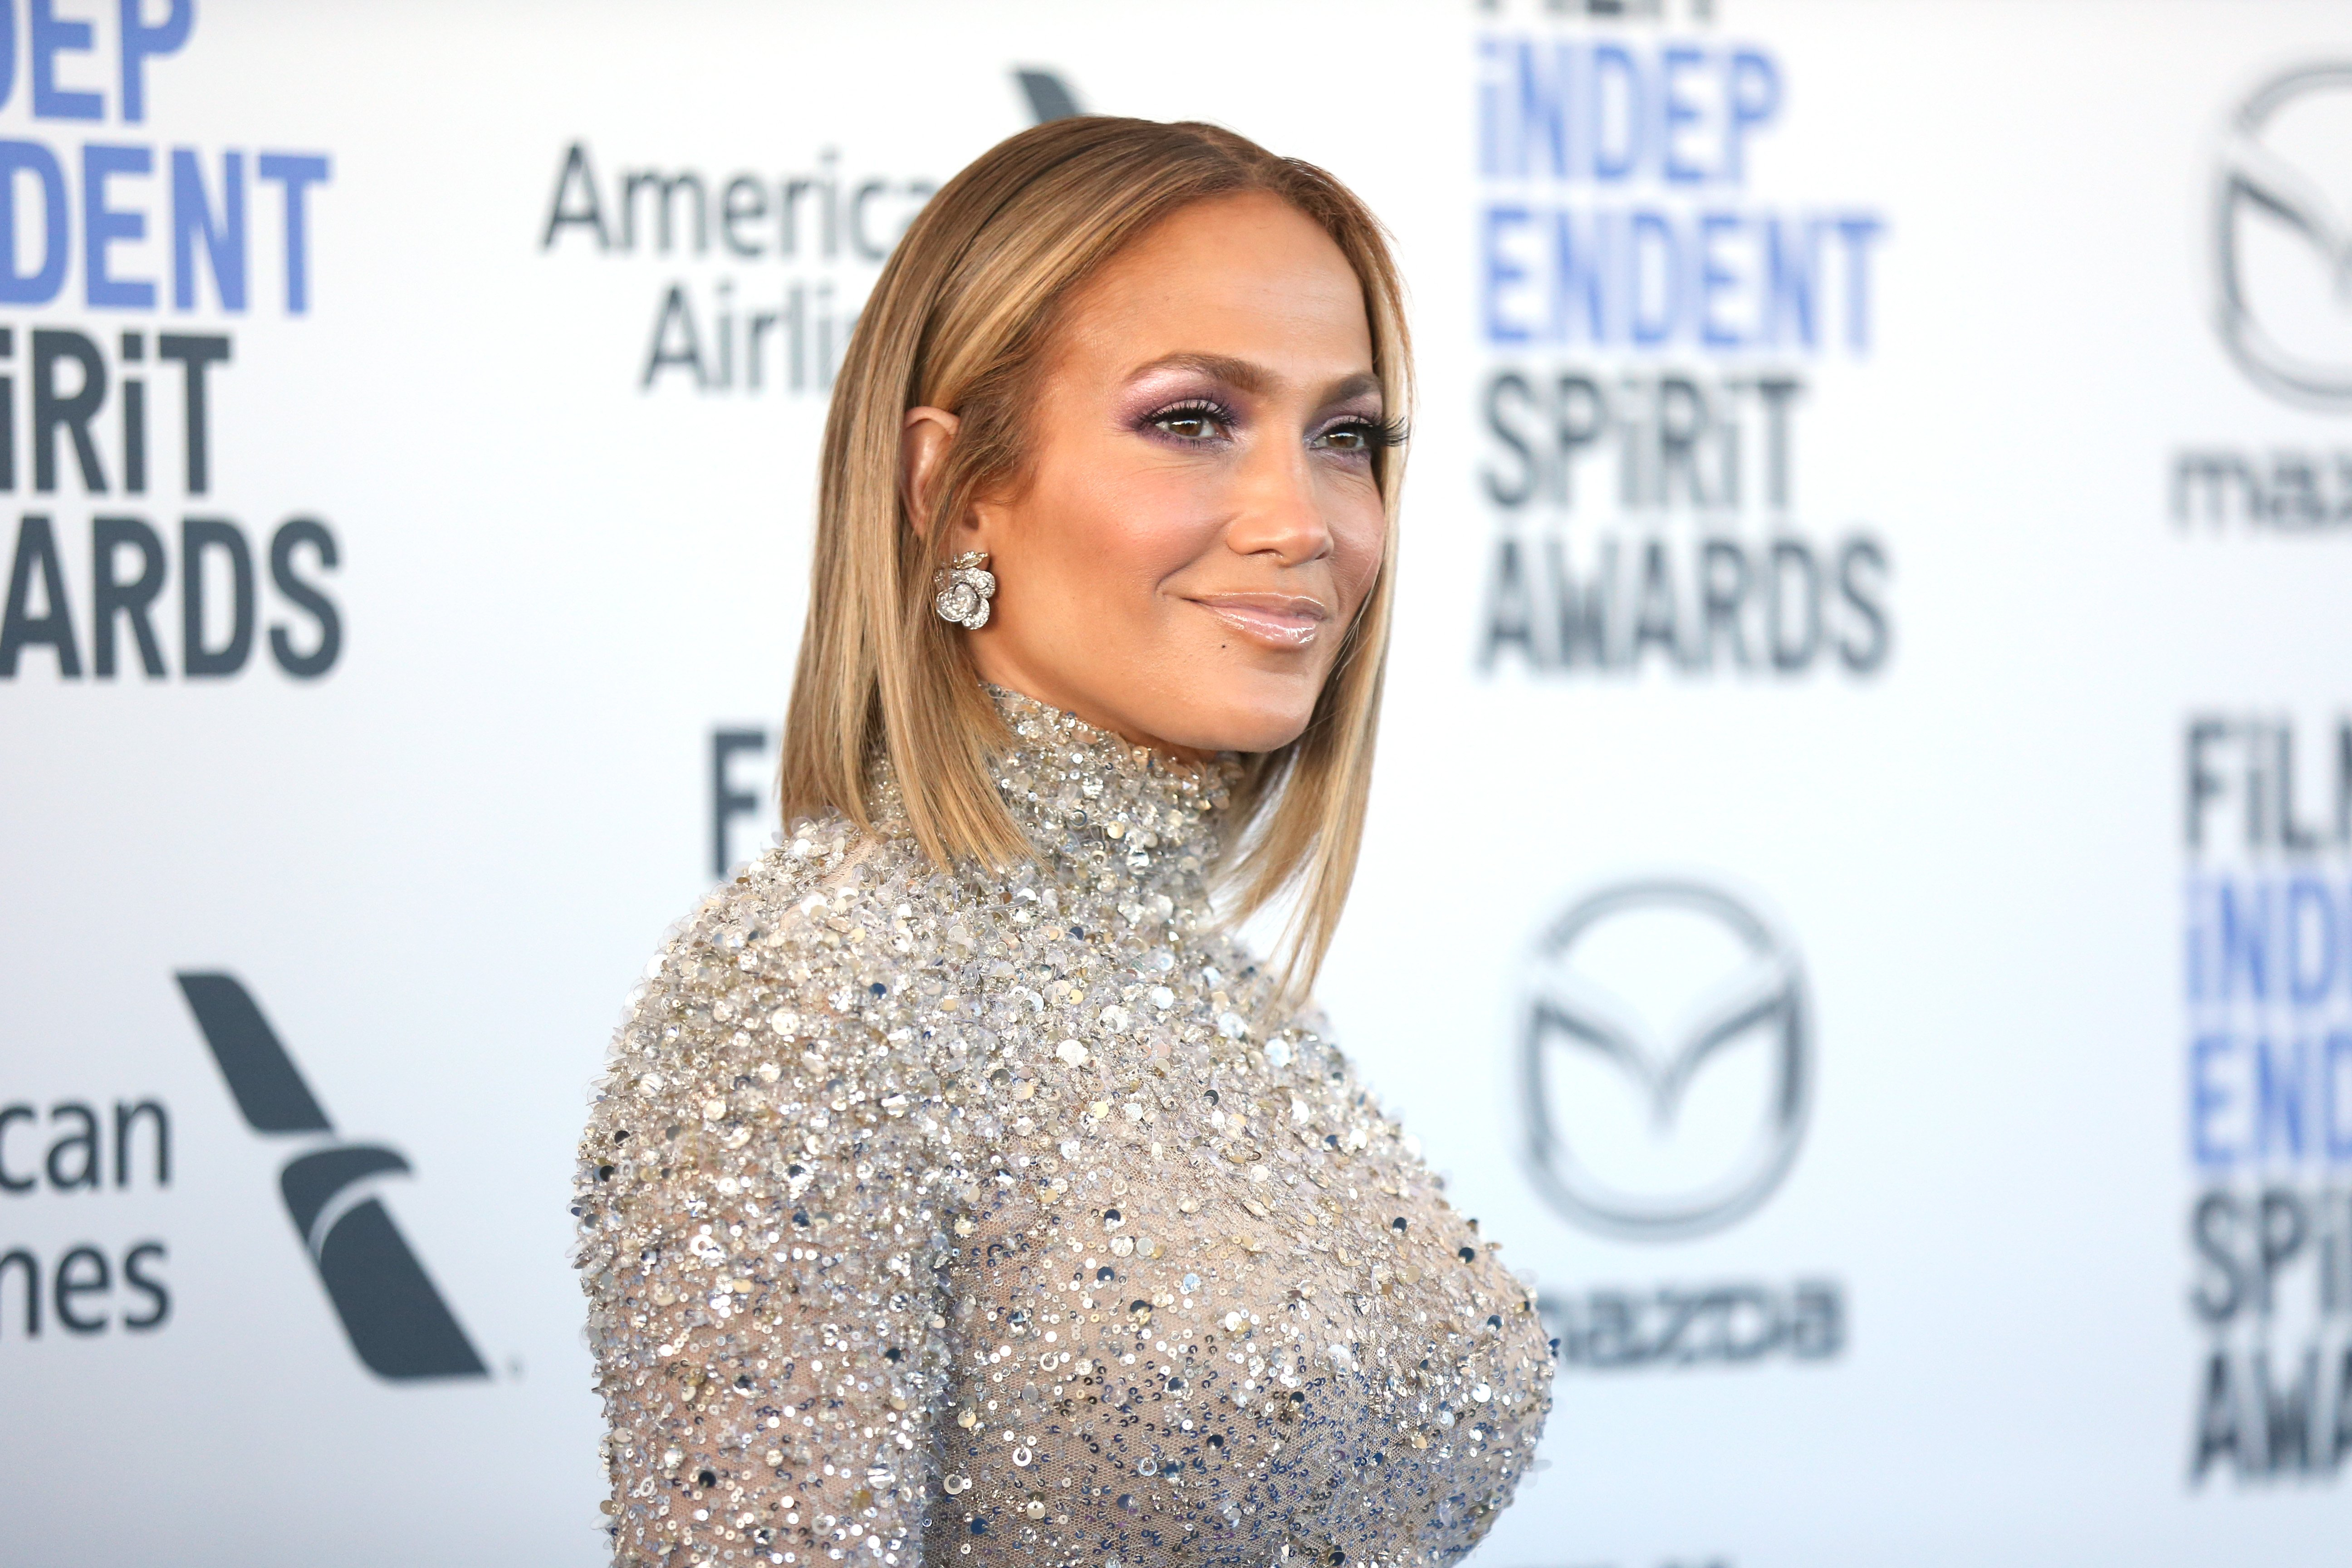 Jennifer Lopez pictured at the 2020 Film Independent Spirit Awards on February 08, 2020 | Photo: Getty Images